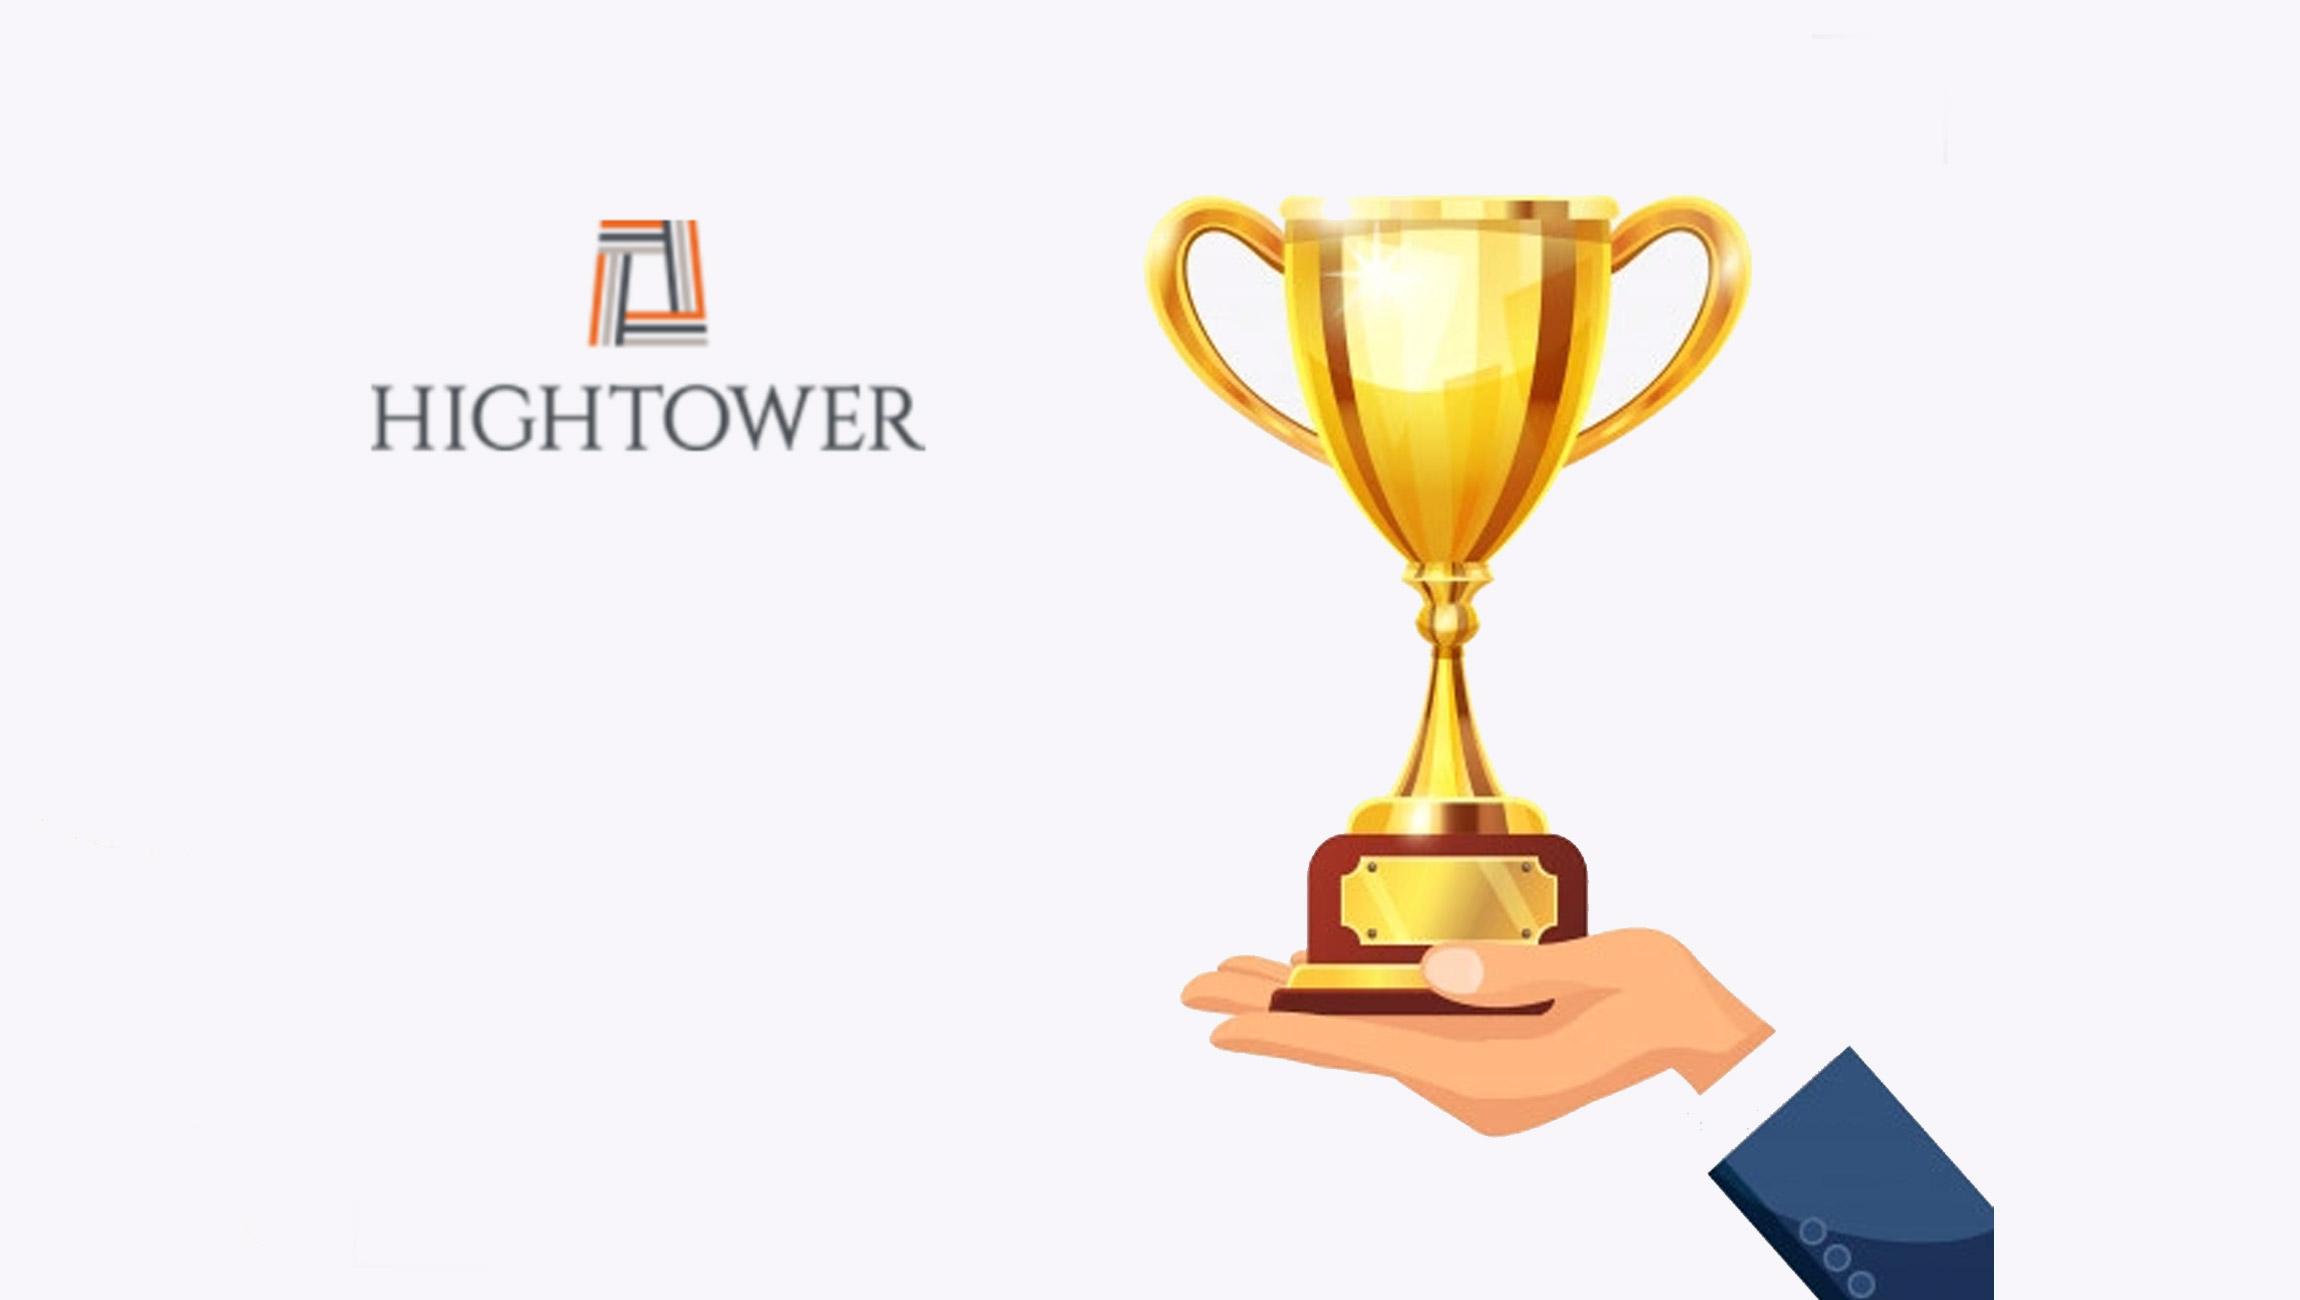 Hightower Awarded Aite Group's 2021 Digital Wealth Management Impact Innovation Award for Sales Enablement/Prospecting